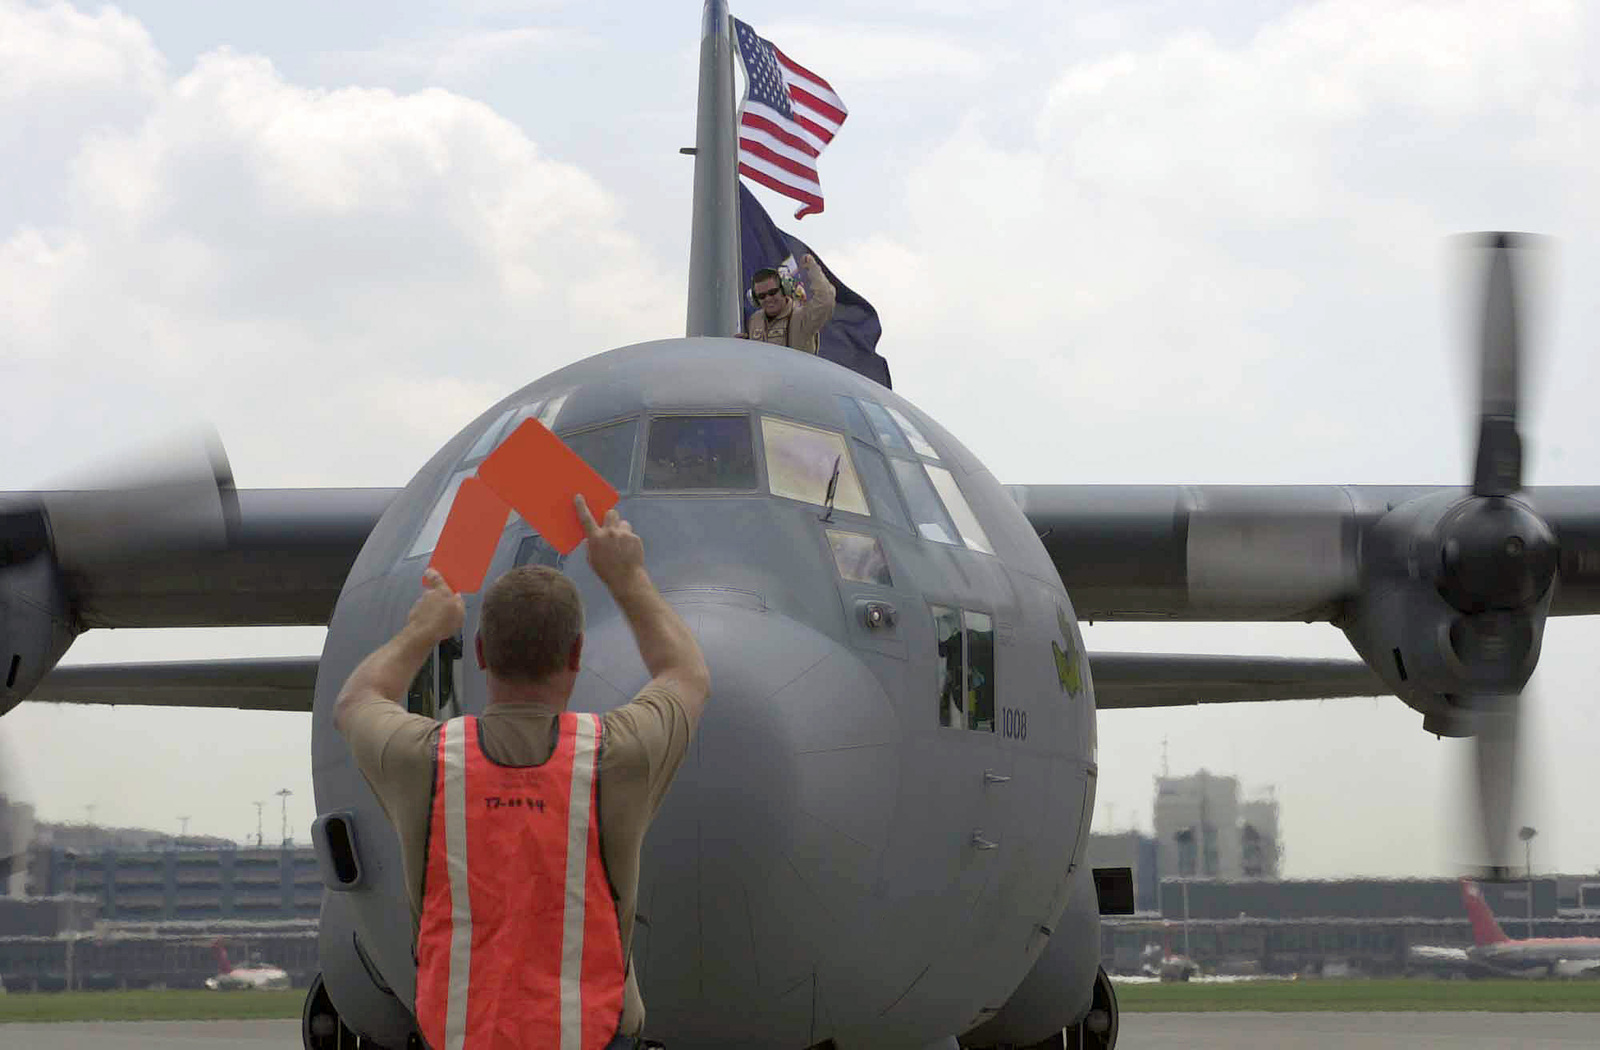 A US Air Force (USAF) C-130H Hercules cargo aircraft assigned to the 133rd Airlift Wing (AW), with the Minnesota Air National Guard (ANG), arrives during a re-deployment to Minneapolis, St. Paul, from Southwest Asia in support of Operation IRAQI FREEDOM